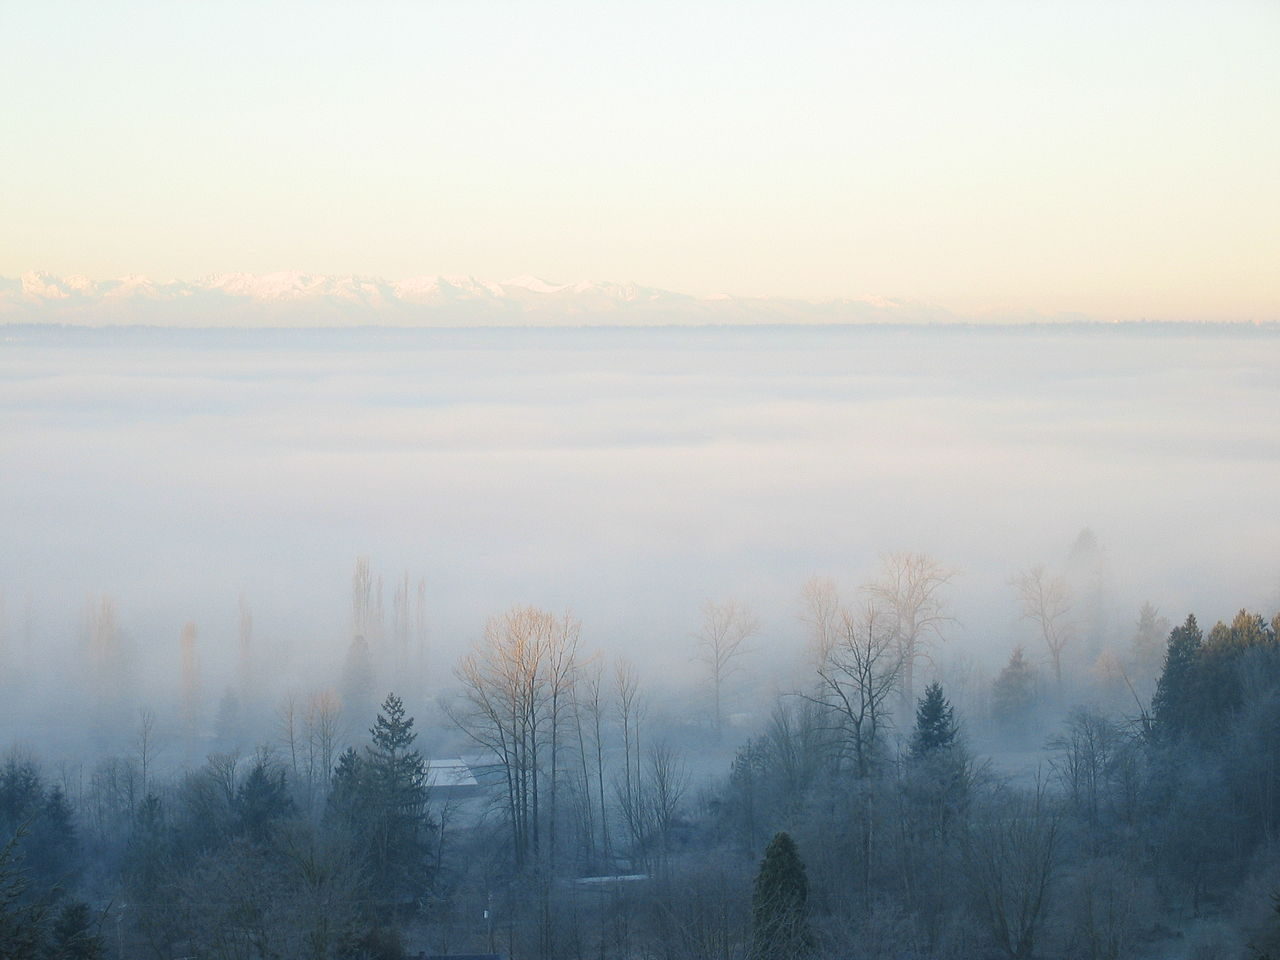 fog covers a rural area